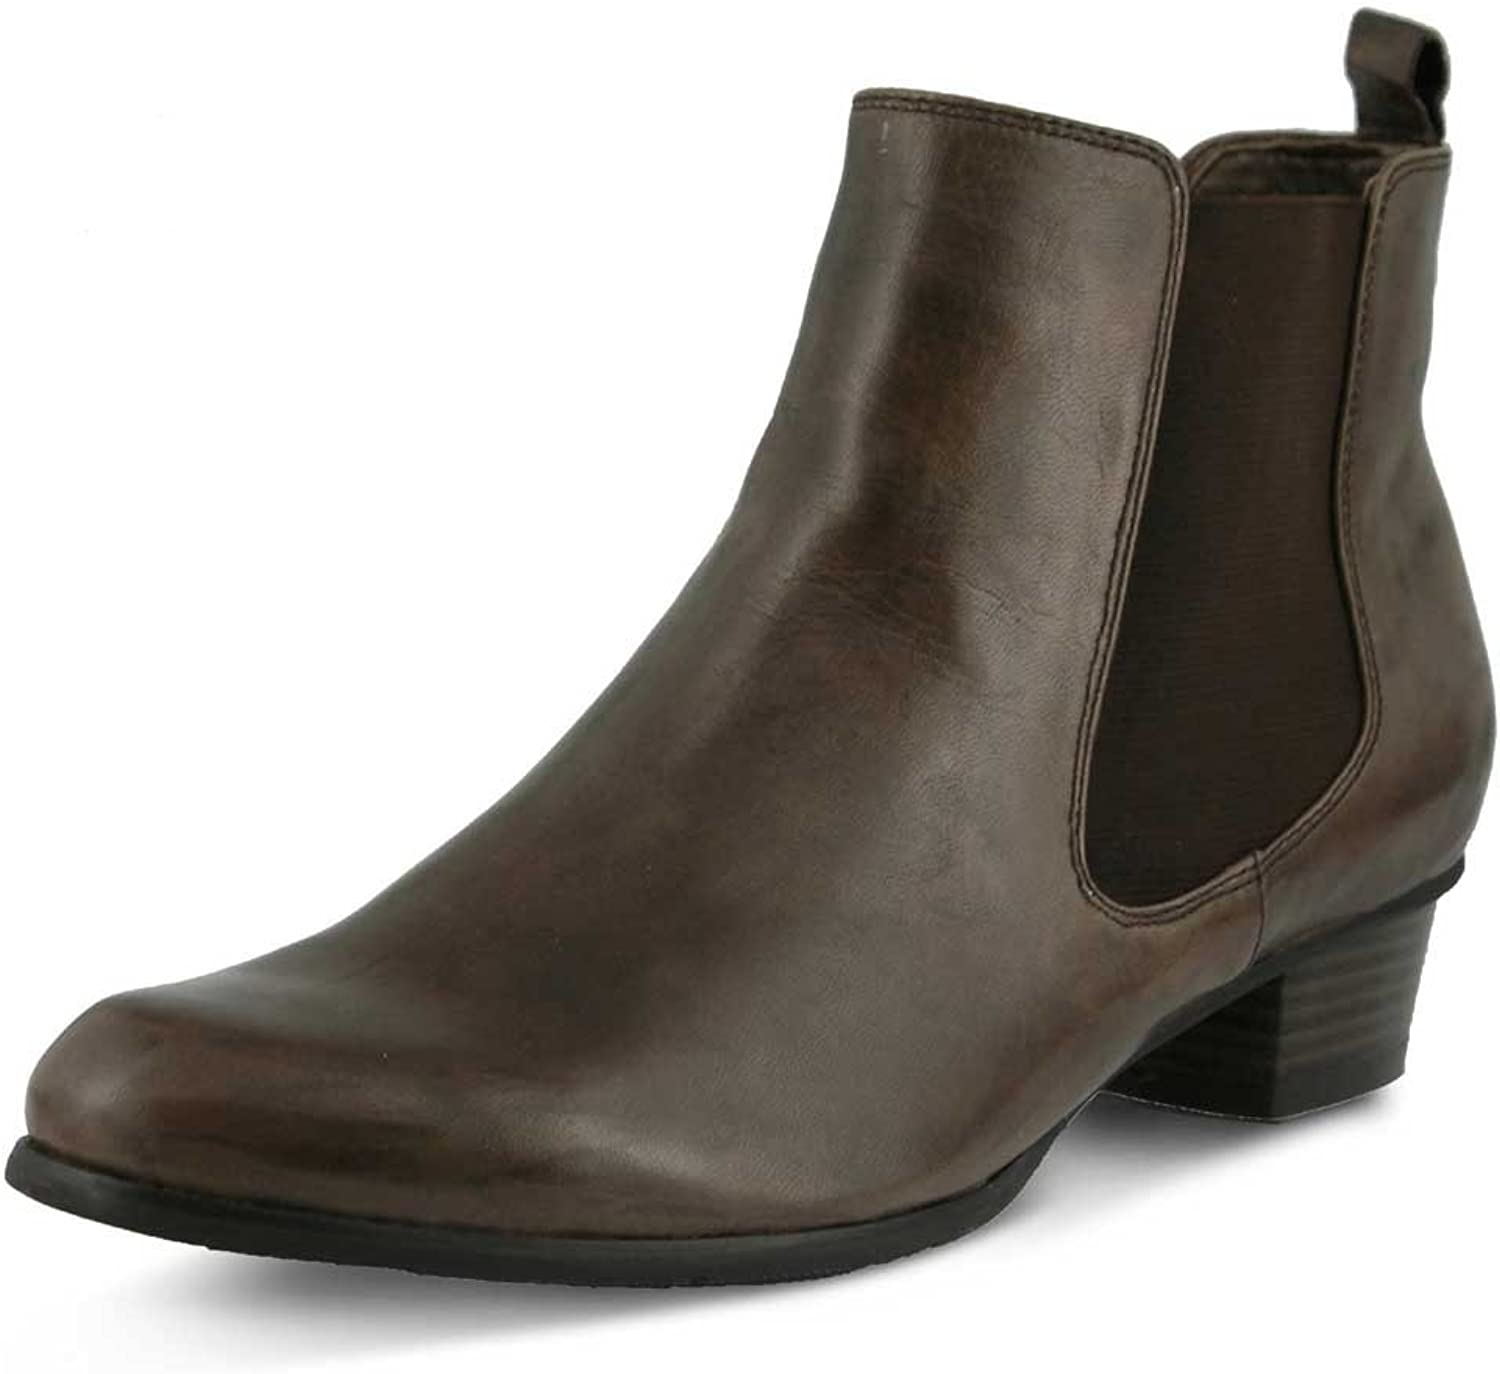 Spring Step Women's Lithium Chelsea Boot